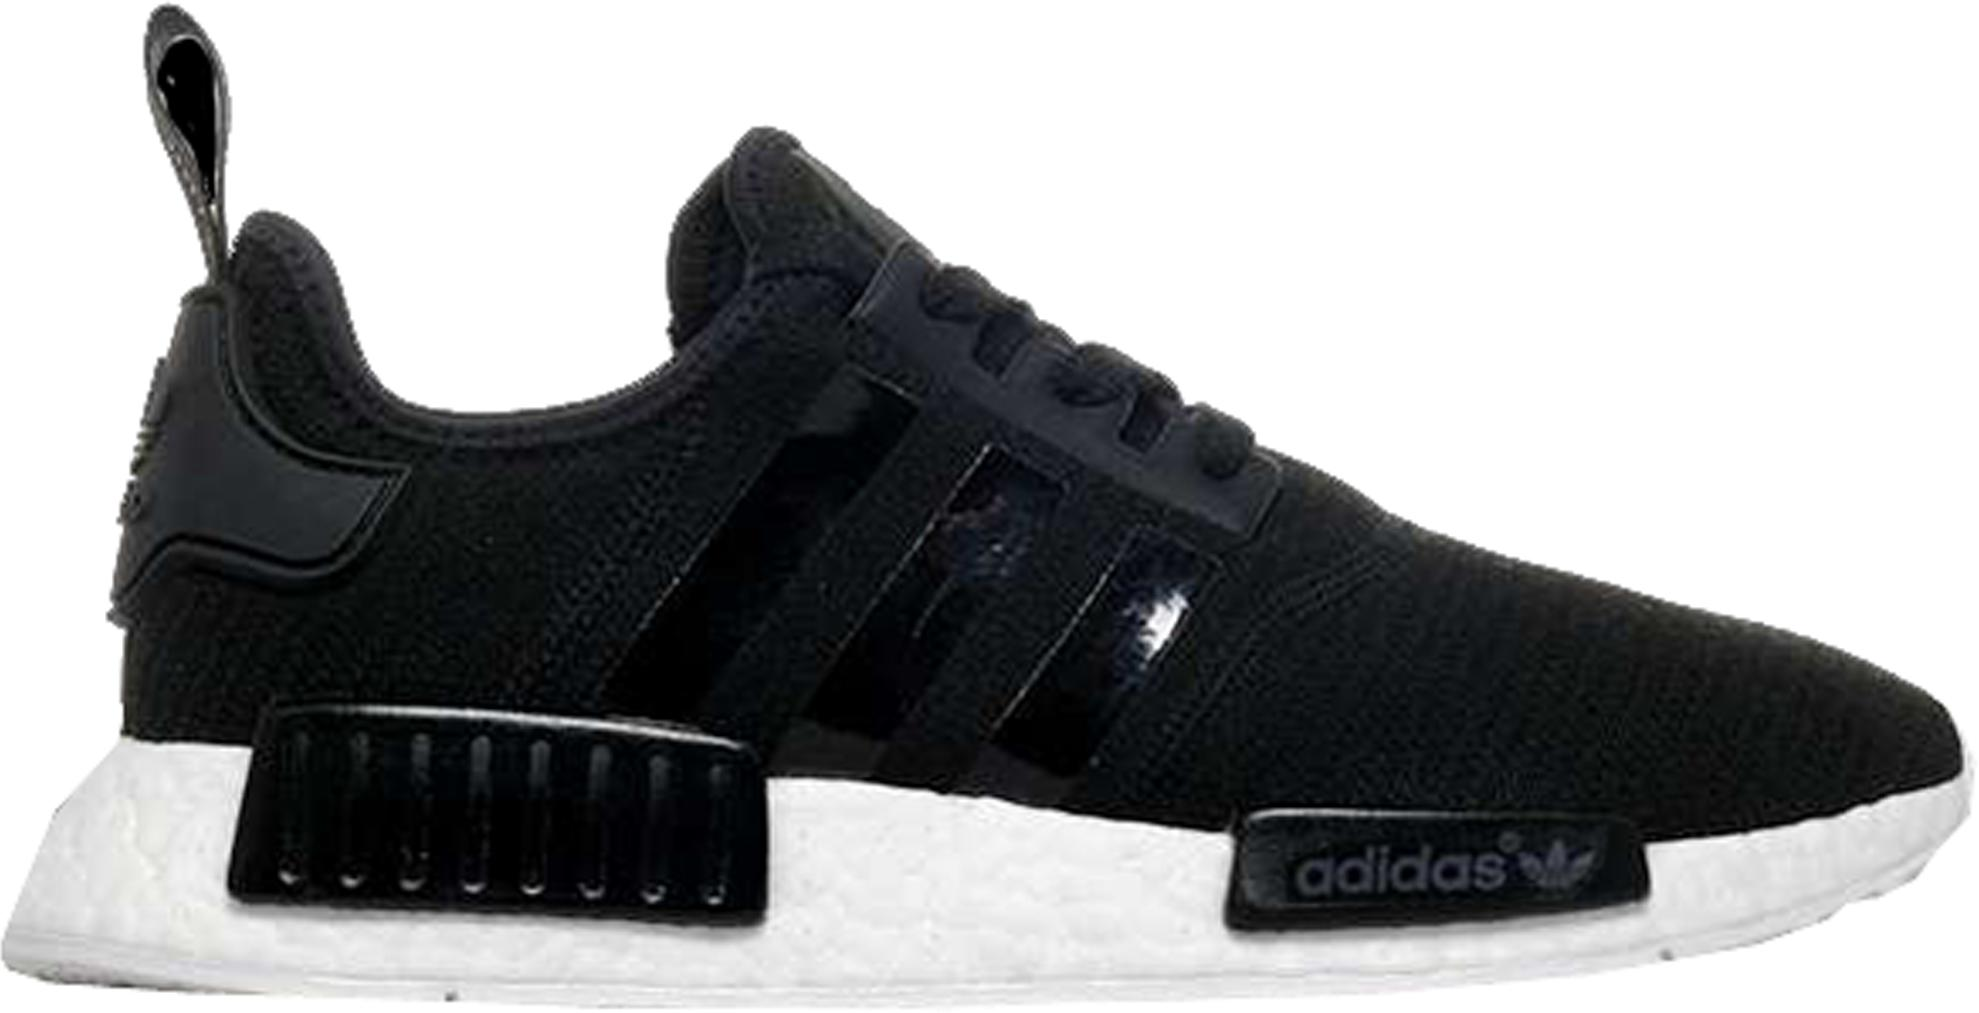 official photos 79197 bcaae Women's Nmd R1 Core Black White Rose Gold (w)